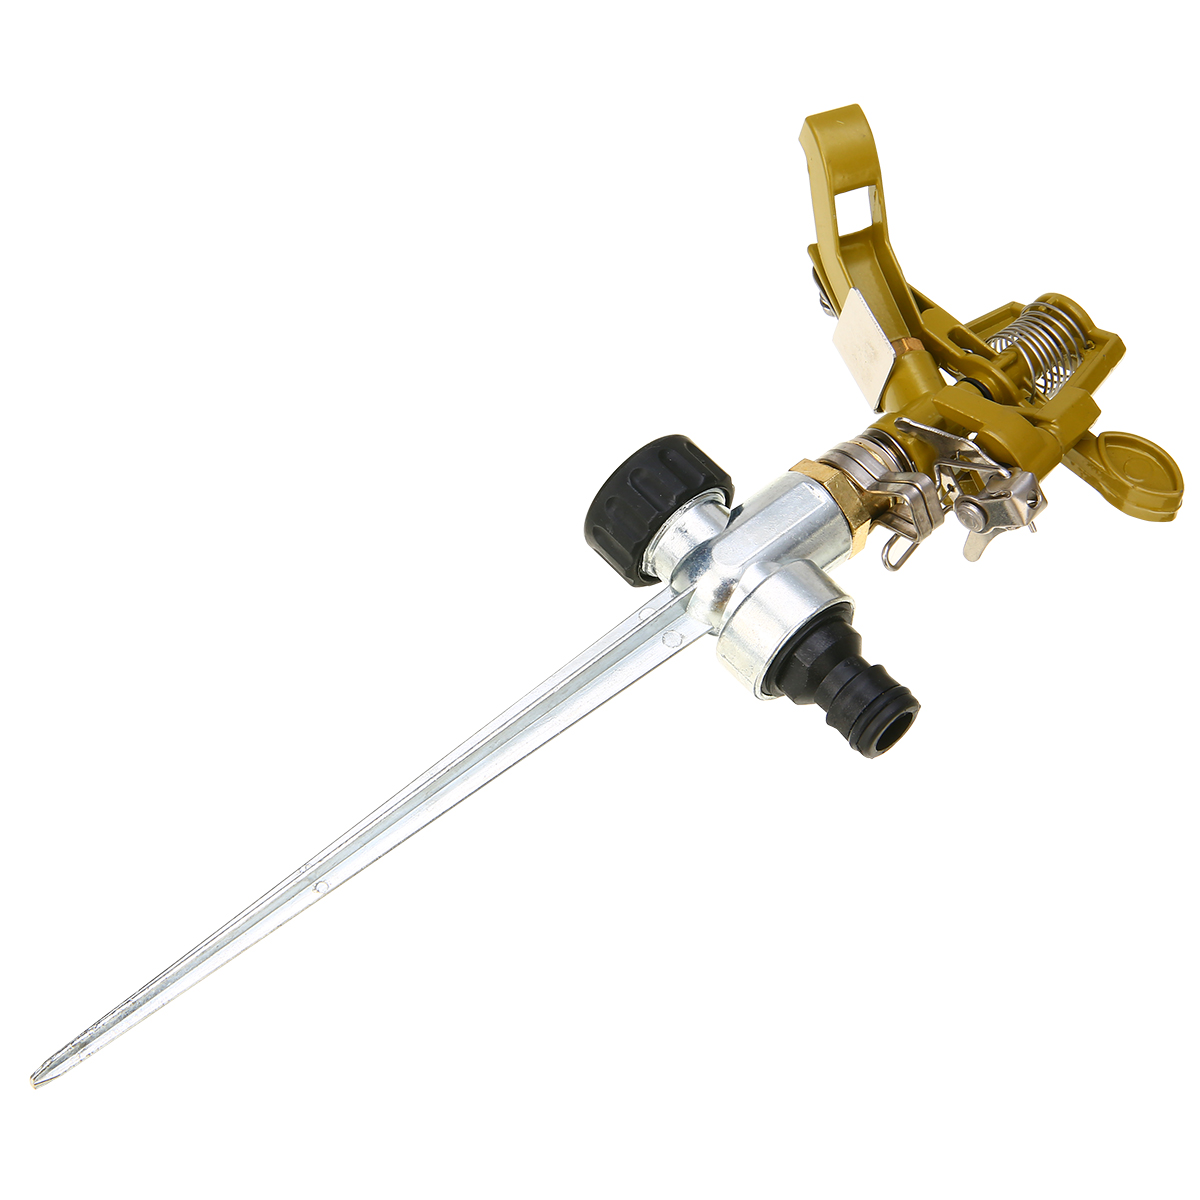 Mayitr Garden Metal Sprinkler Spike Lawn Grass 360 Degree